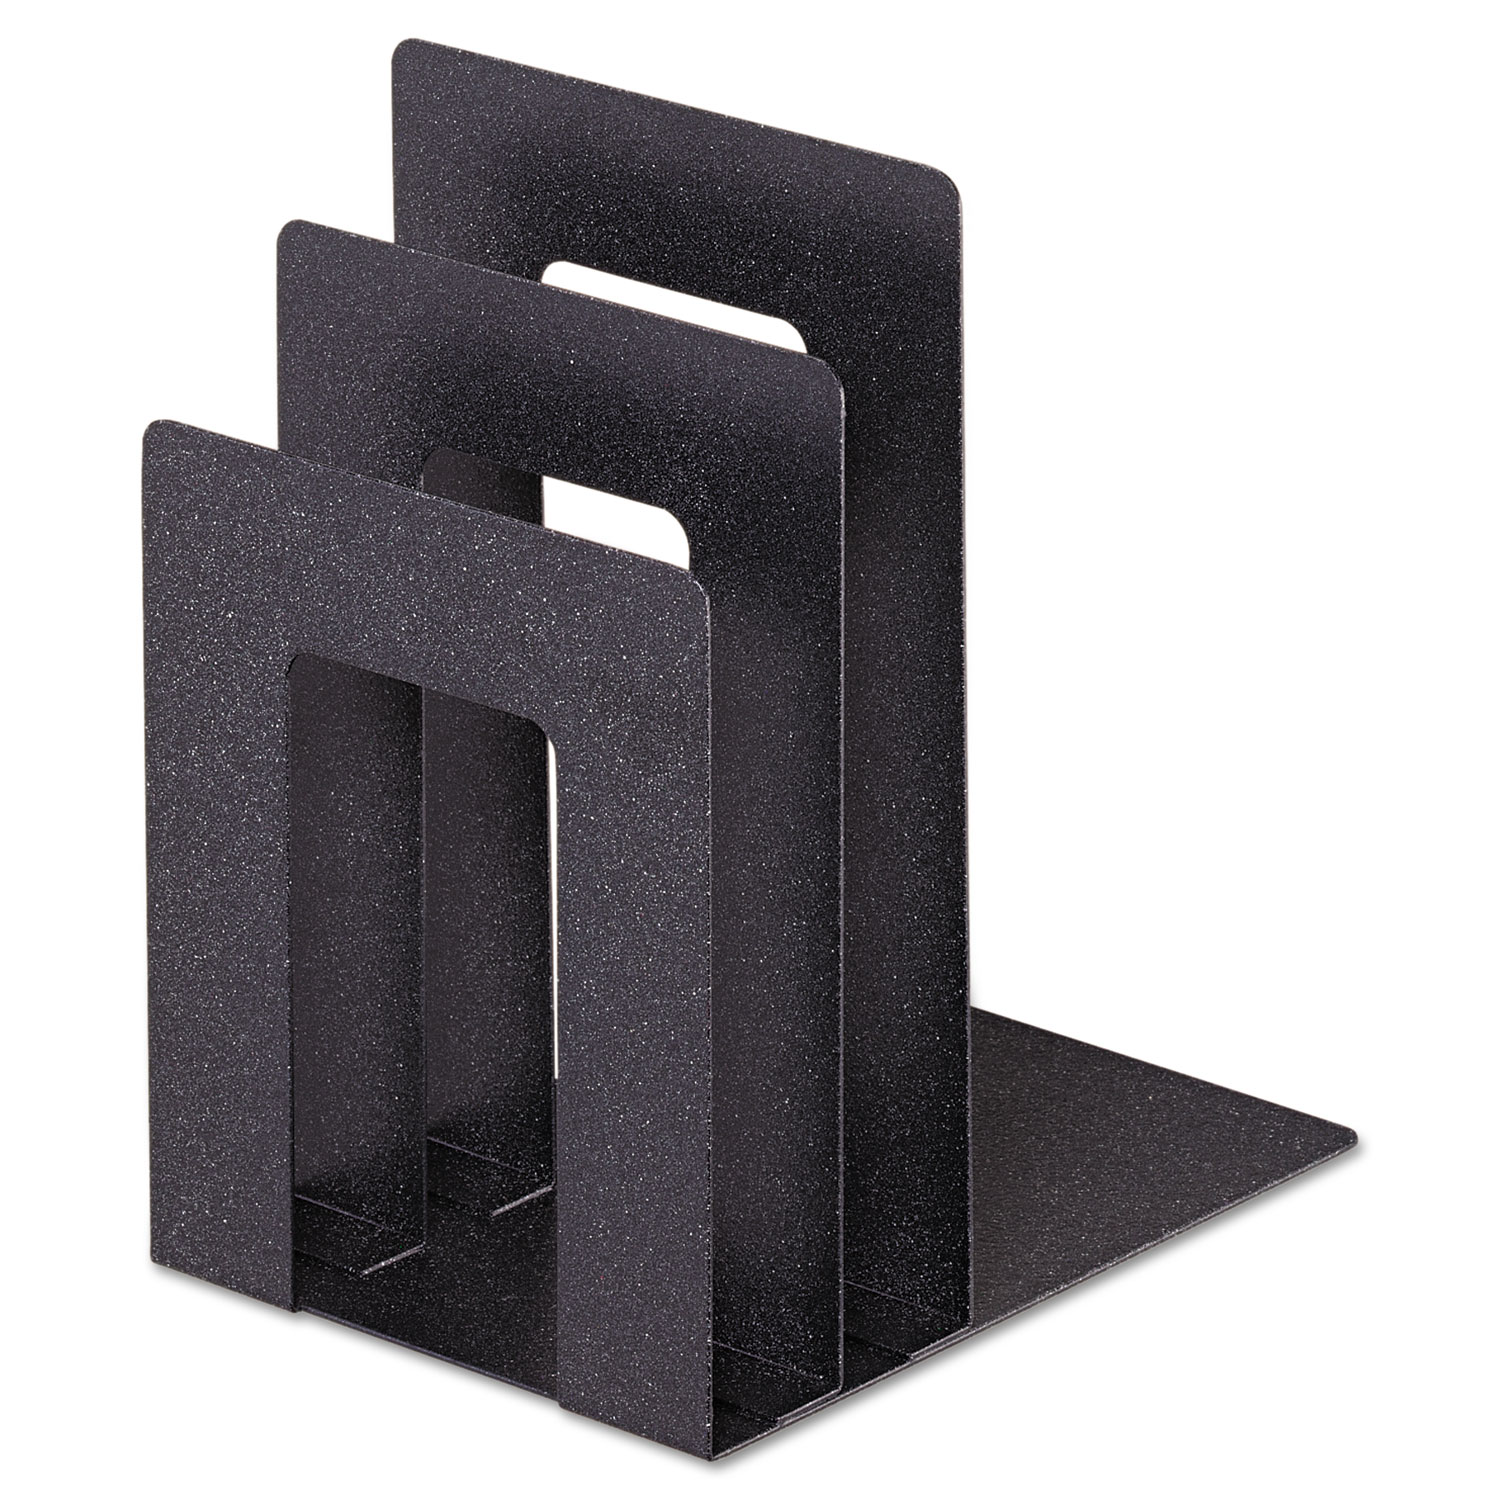 Soho Bookend With Squared Corners 5w X 7d 8h Granite Stone Printing Office Supply